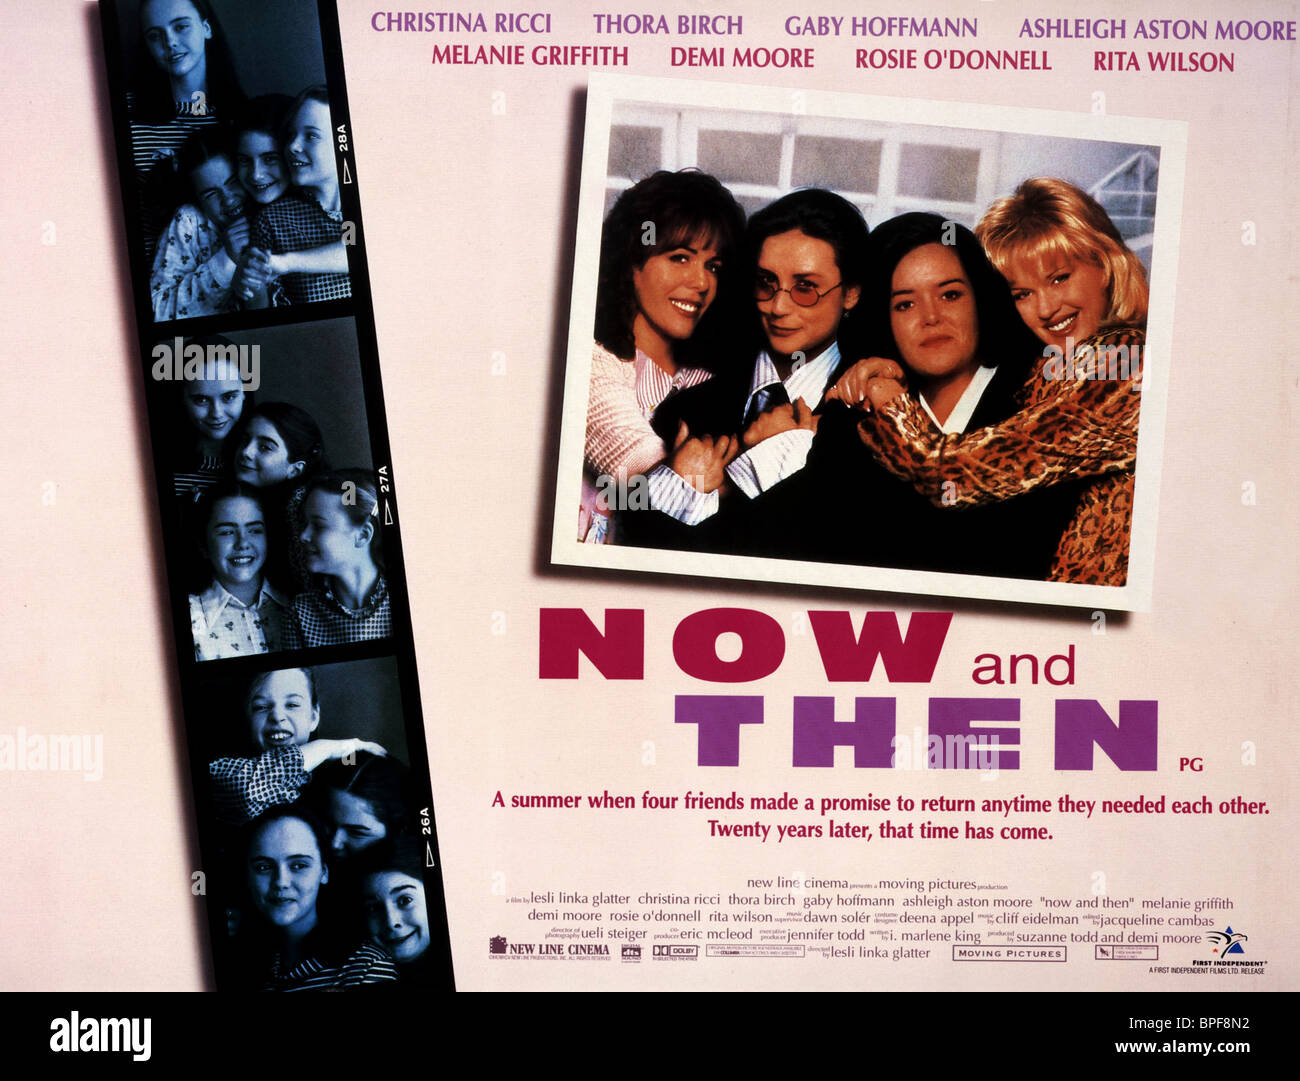 Now And Then Advertising Photograph >> Film Poster Now And Then 1995 Stock Photo 31068942 Alamy